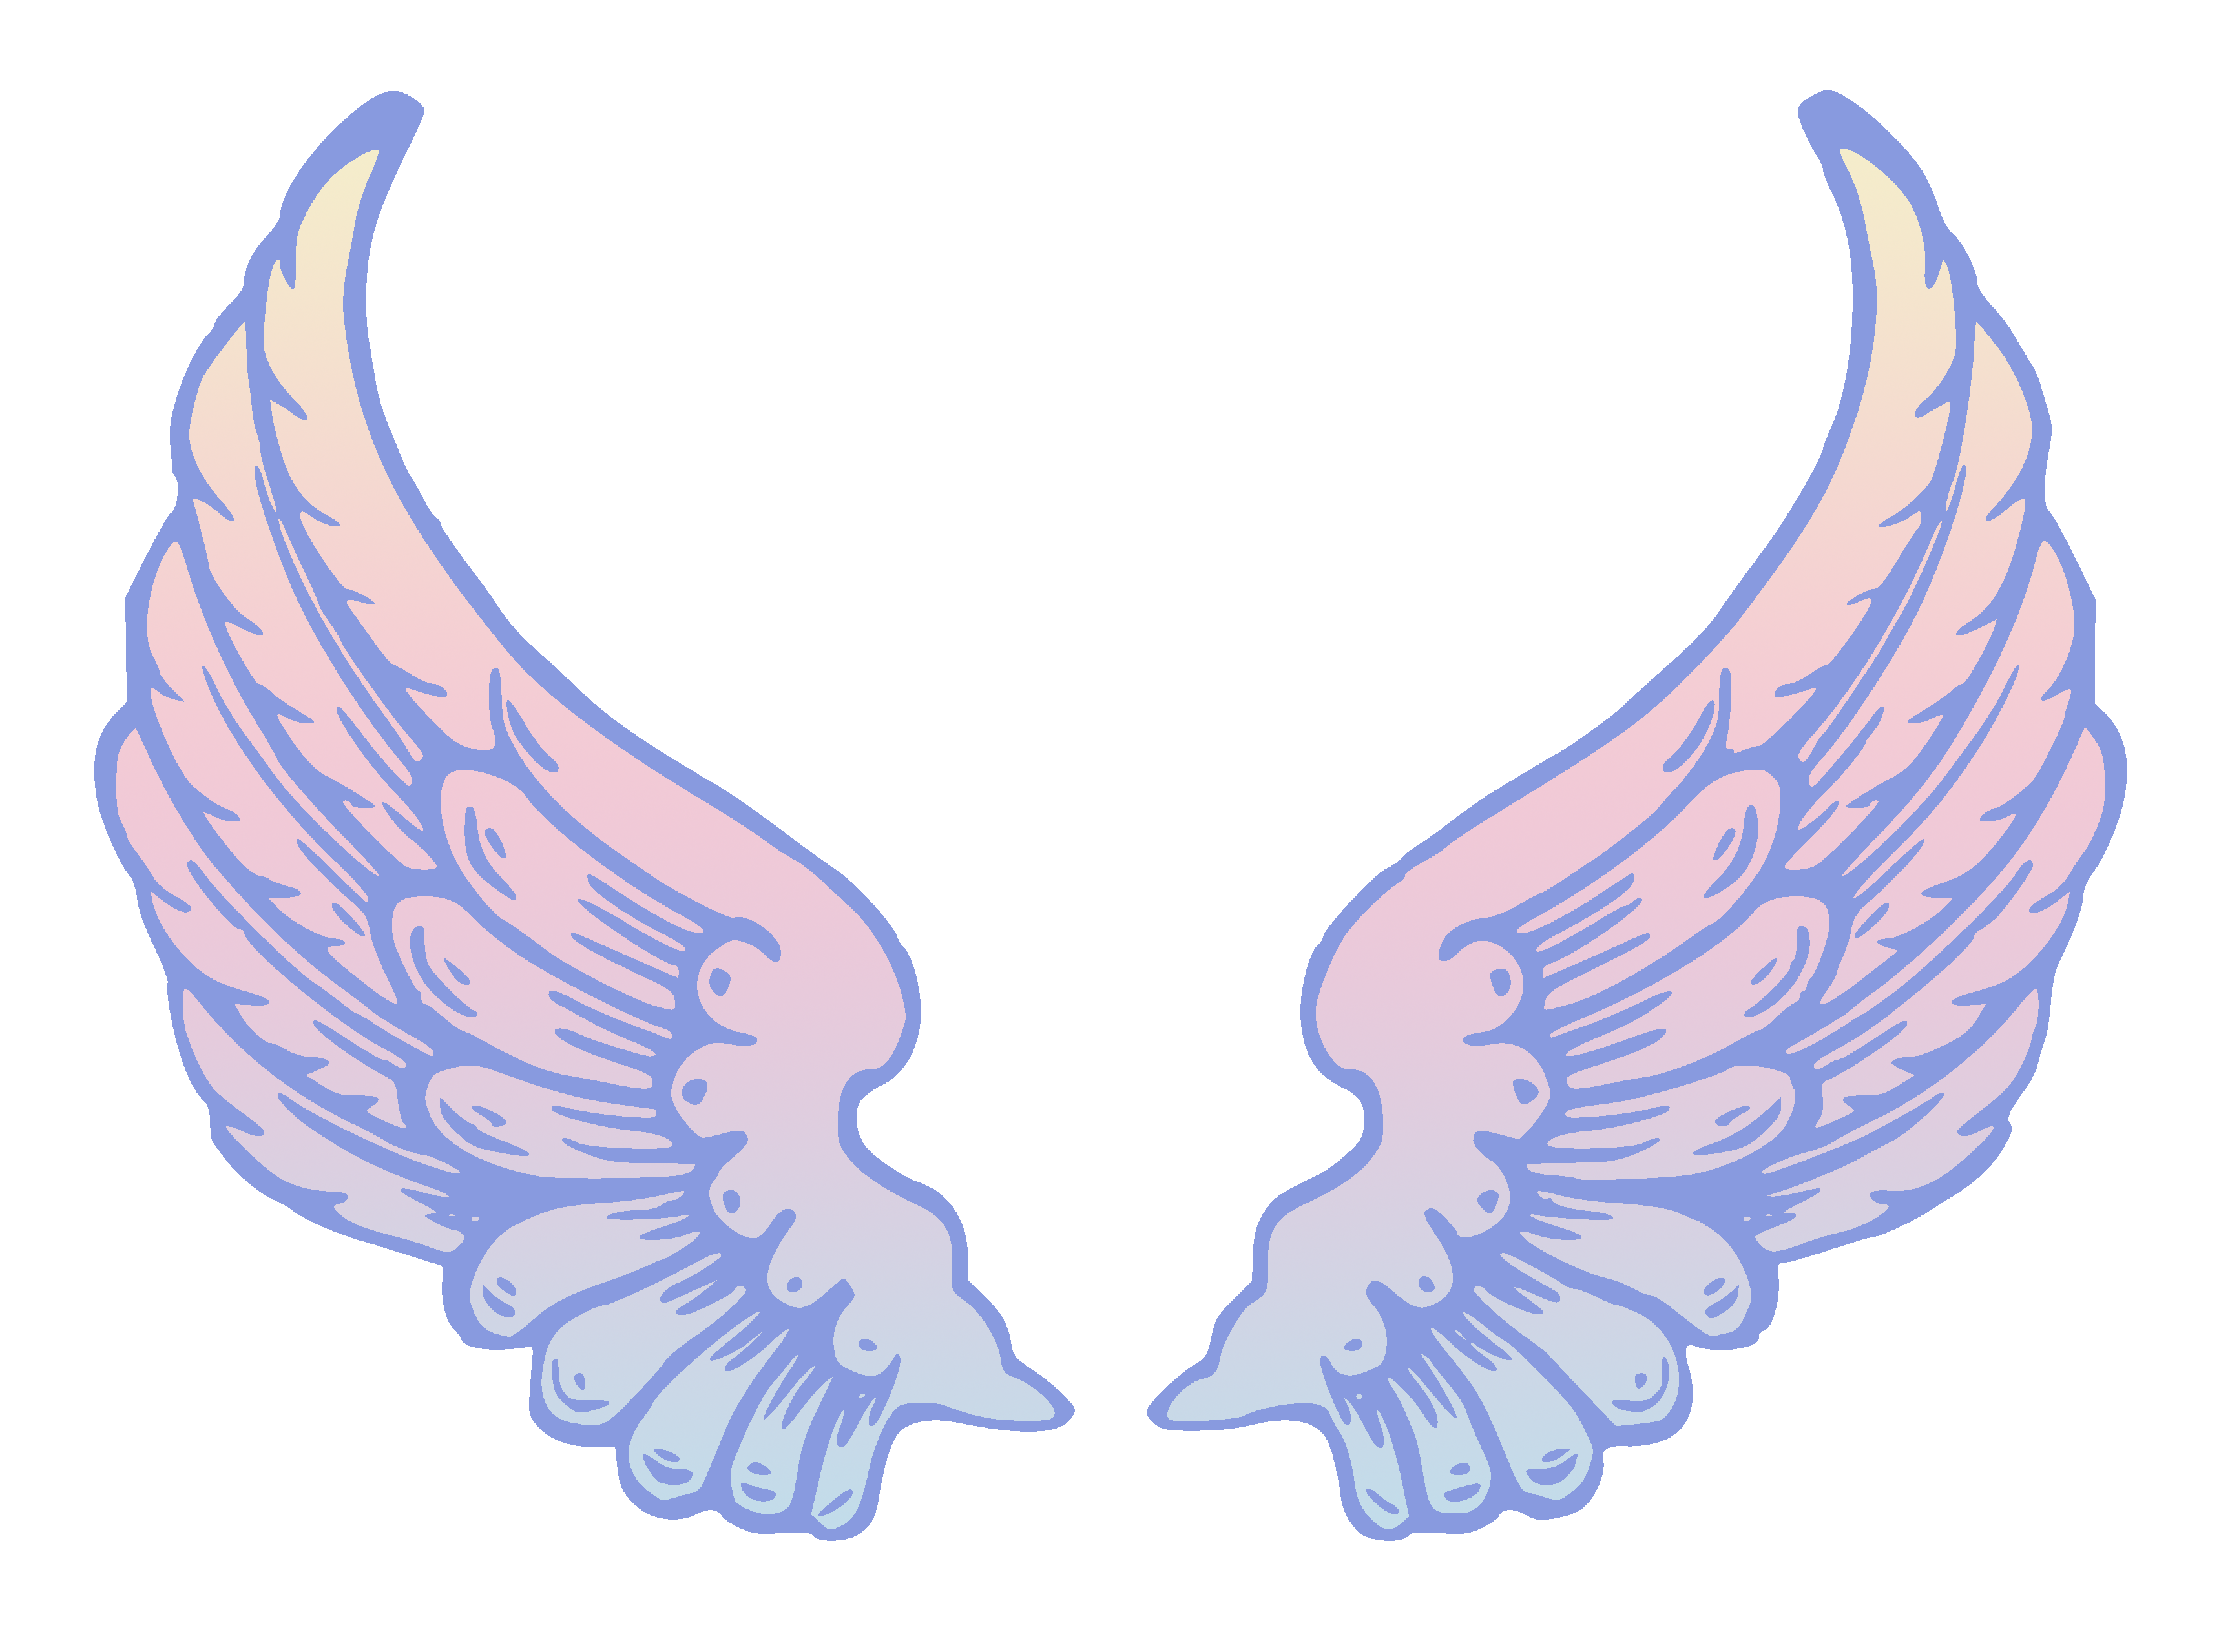 Halo clipart heavenly In Cliparts Halo Clip Art